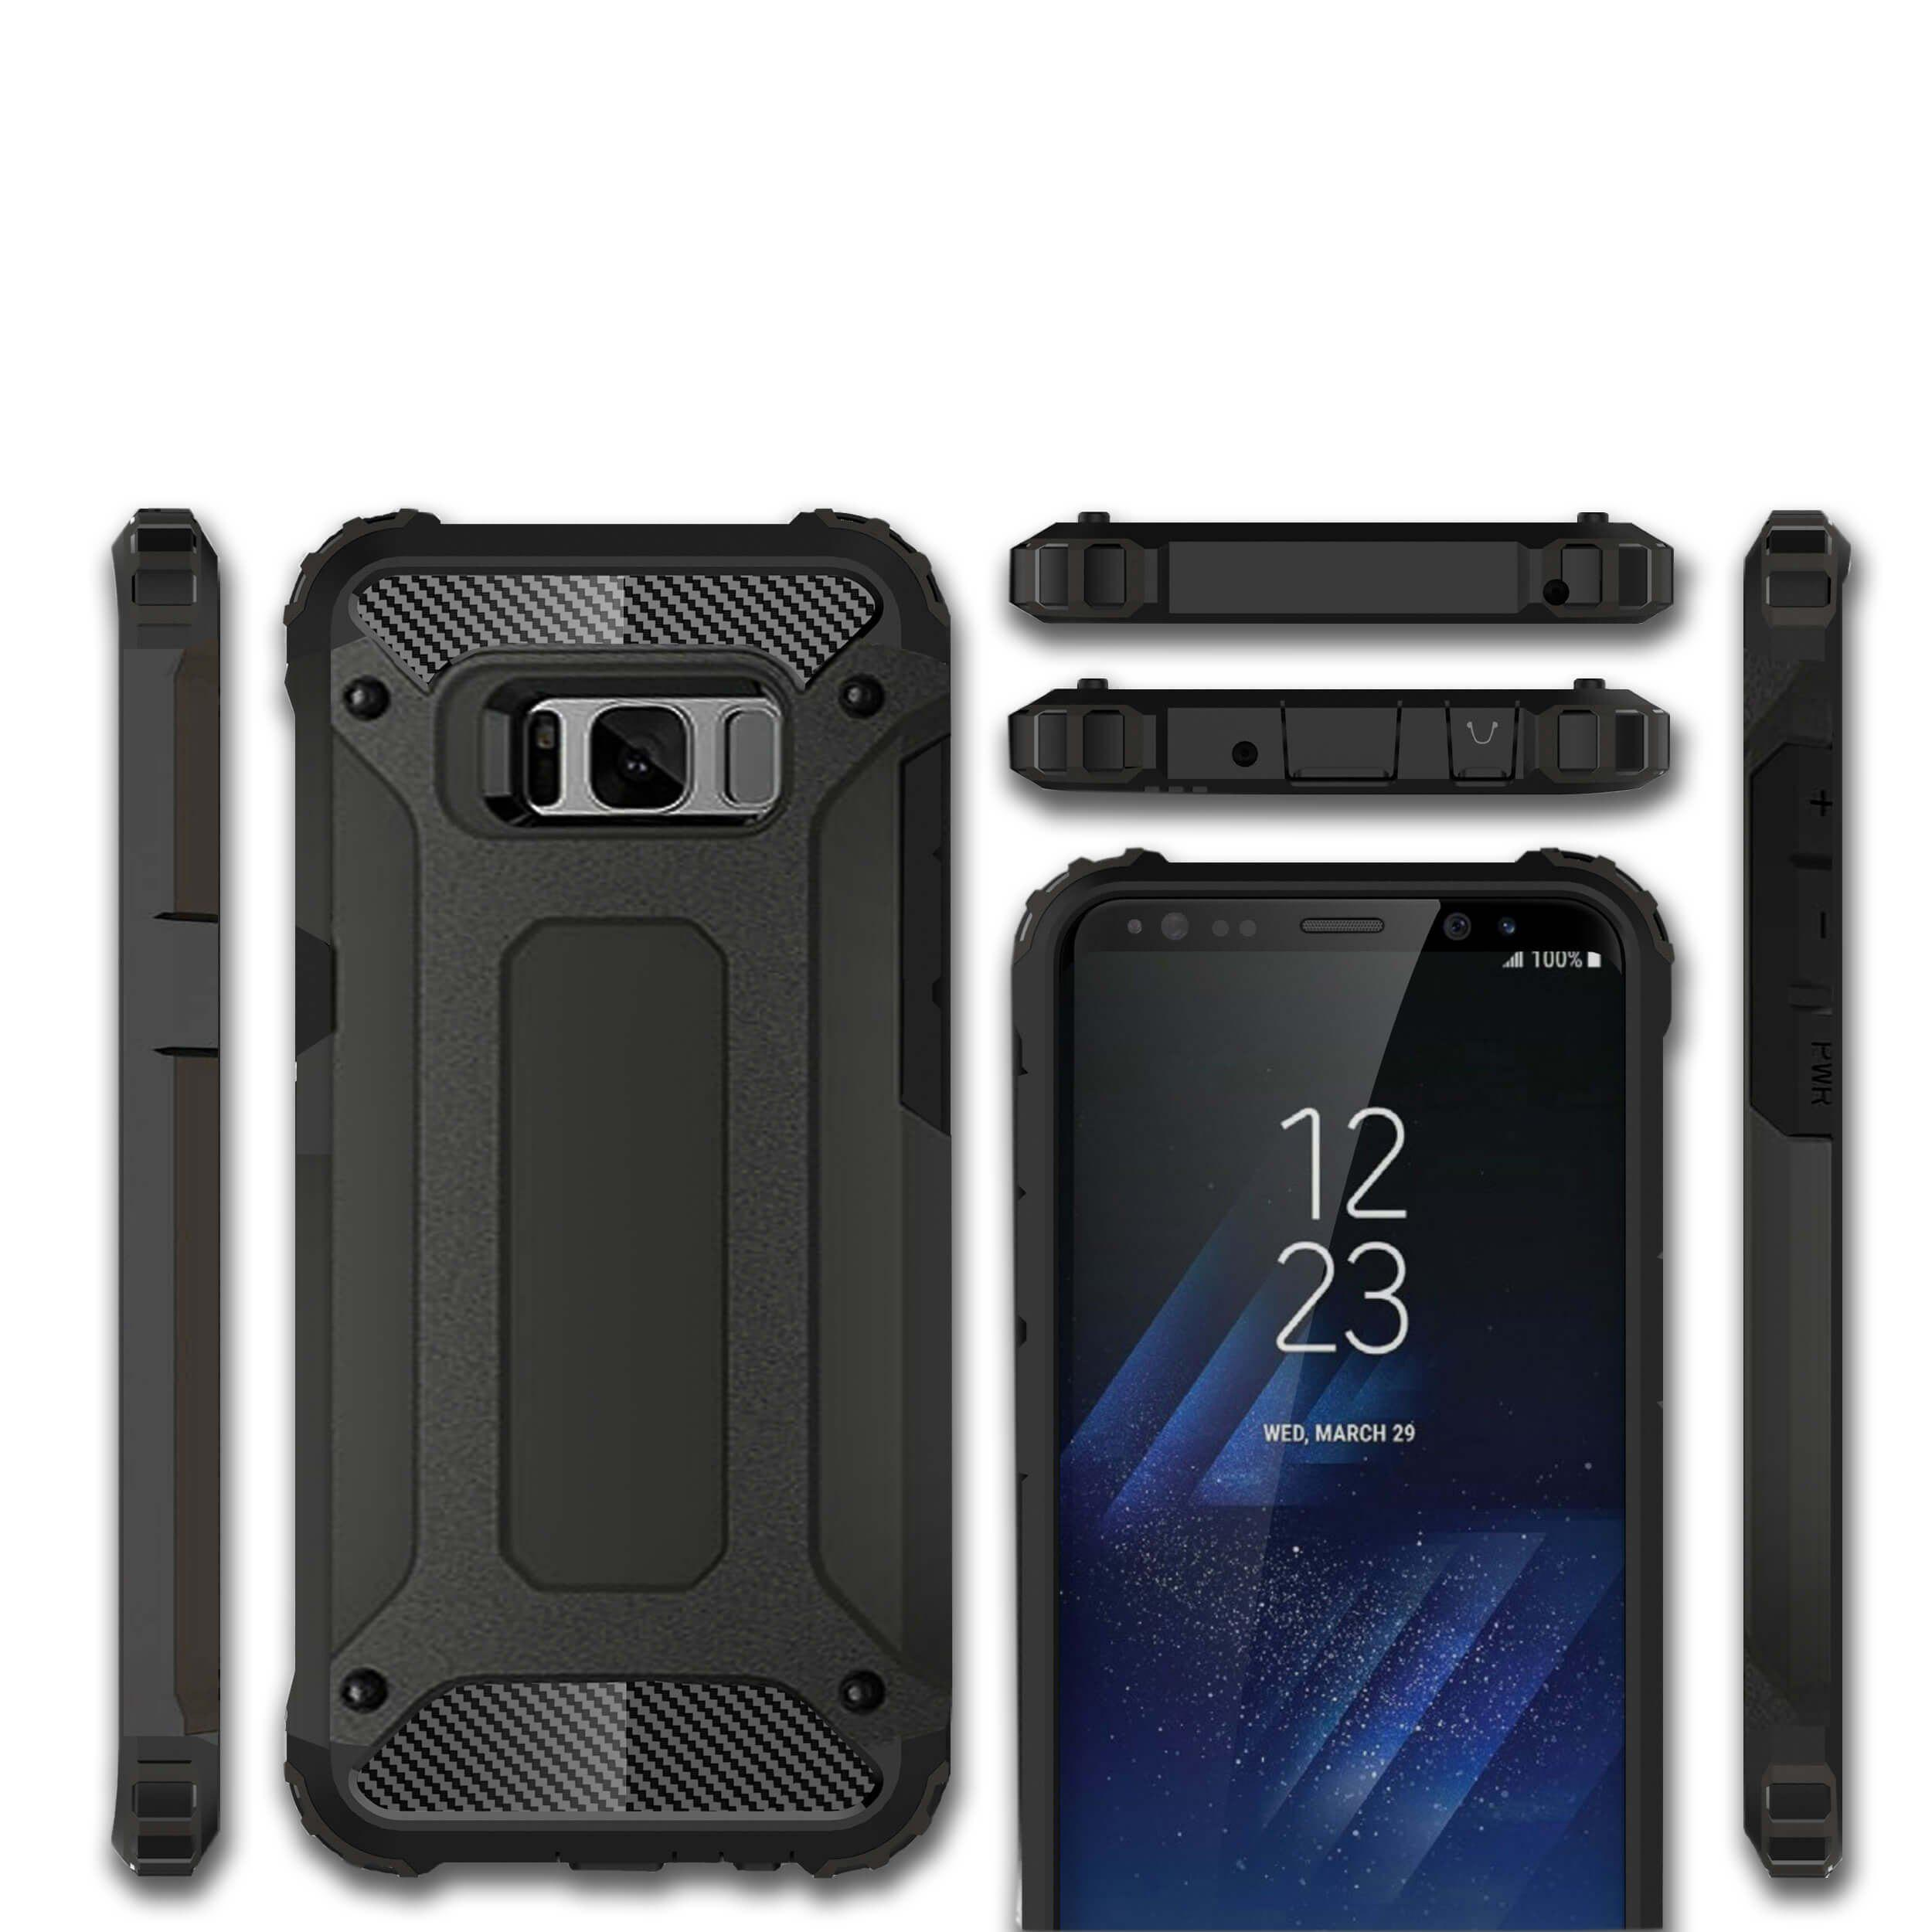 Strong Hybrid Silicone TPU+Armor PC Heavy Hard Shockproof Case For  iPhone 7 6 6S Plus 5 5S SE for Huawei P8 P9 Lite / P9 Plus / Mate 8 Honor 8 V8 5C for Samsung Galaxy S8 S8 Plus Note4 5 / S6 Edge Pl hh xw dazzle impact hybrid armor kickstand hard tpu pc back case for samsung galaxy tab a 8 0 inch p350 p355c t350 t355 sm t355